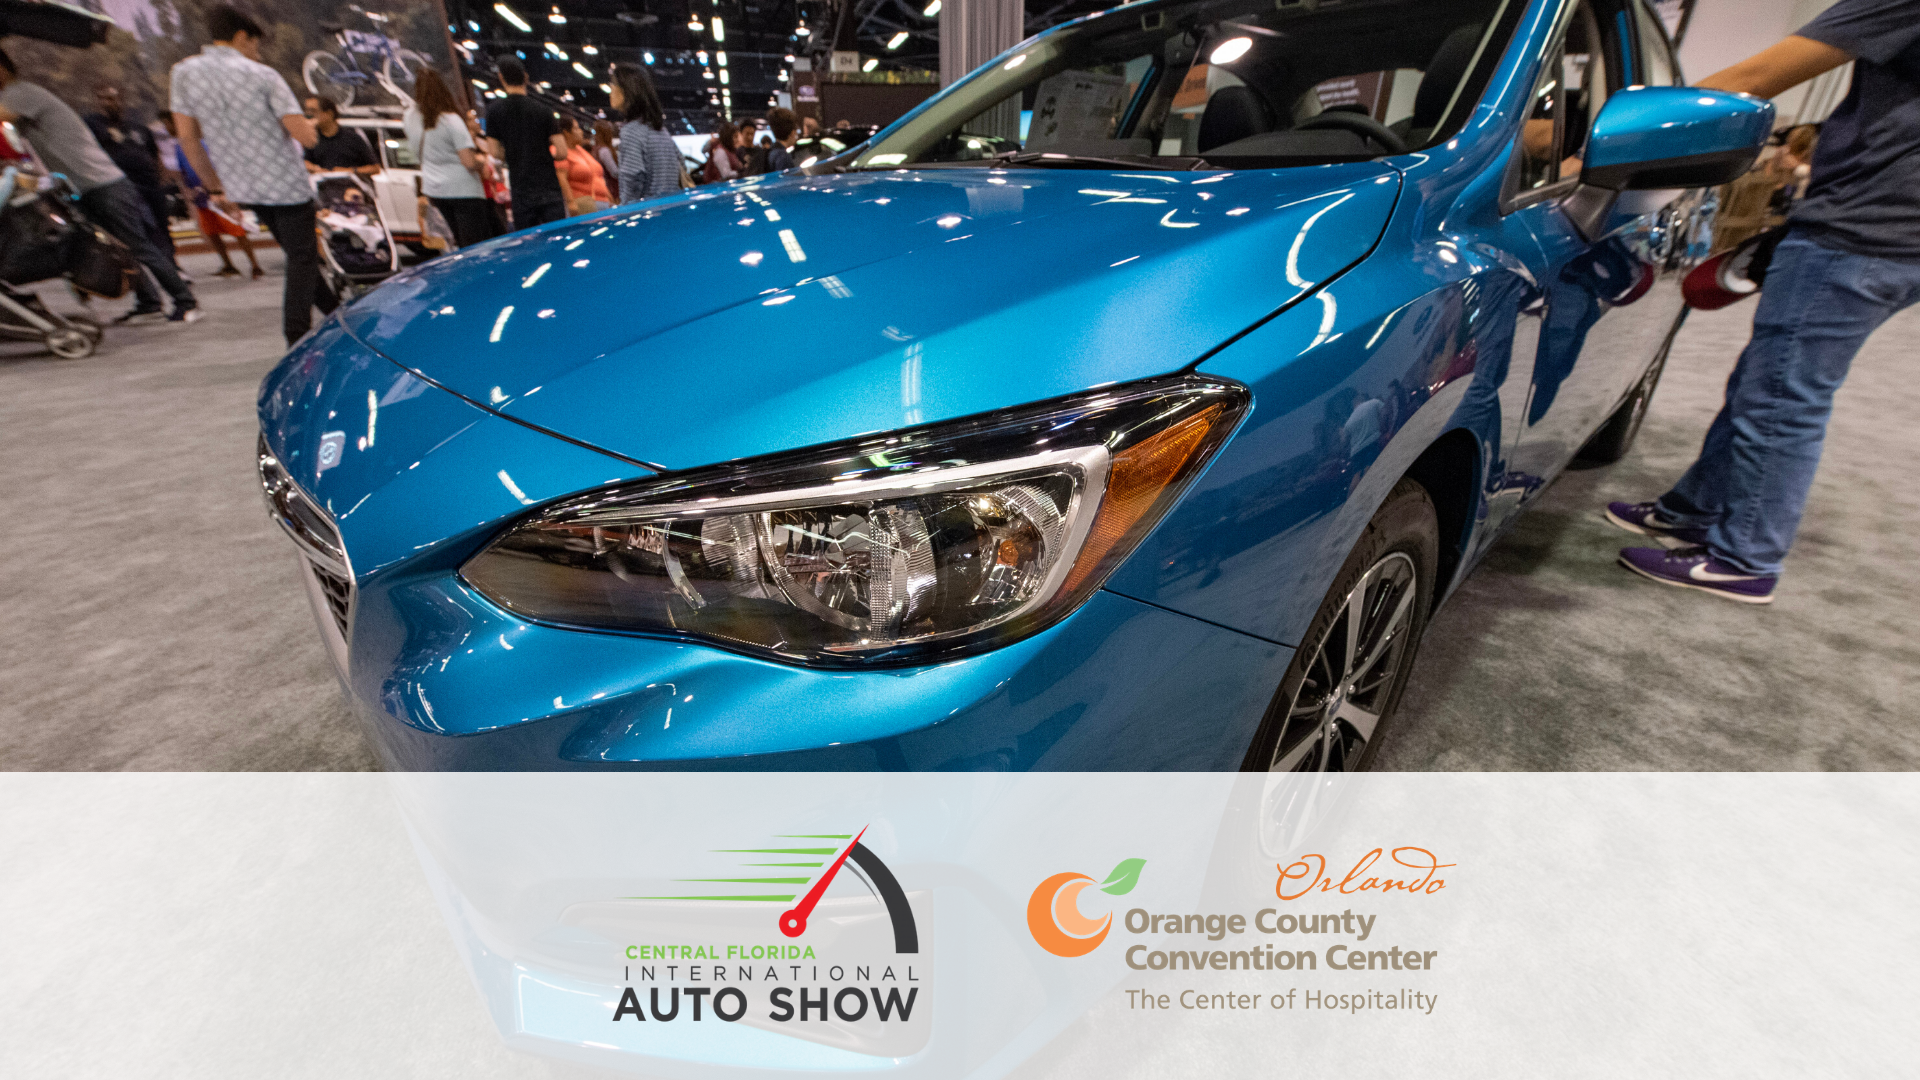 Orange County Convention Center To Host 2021-Model Central Florida International Auto Show With Appropriate Health And Safety Protocols In Place